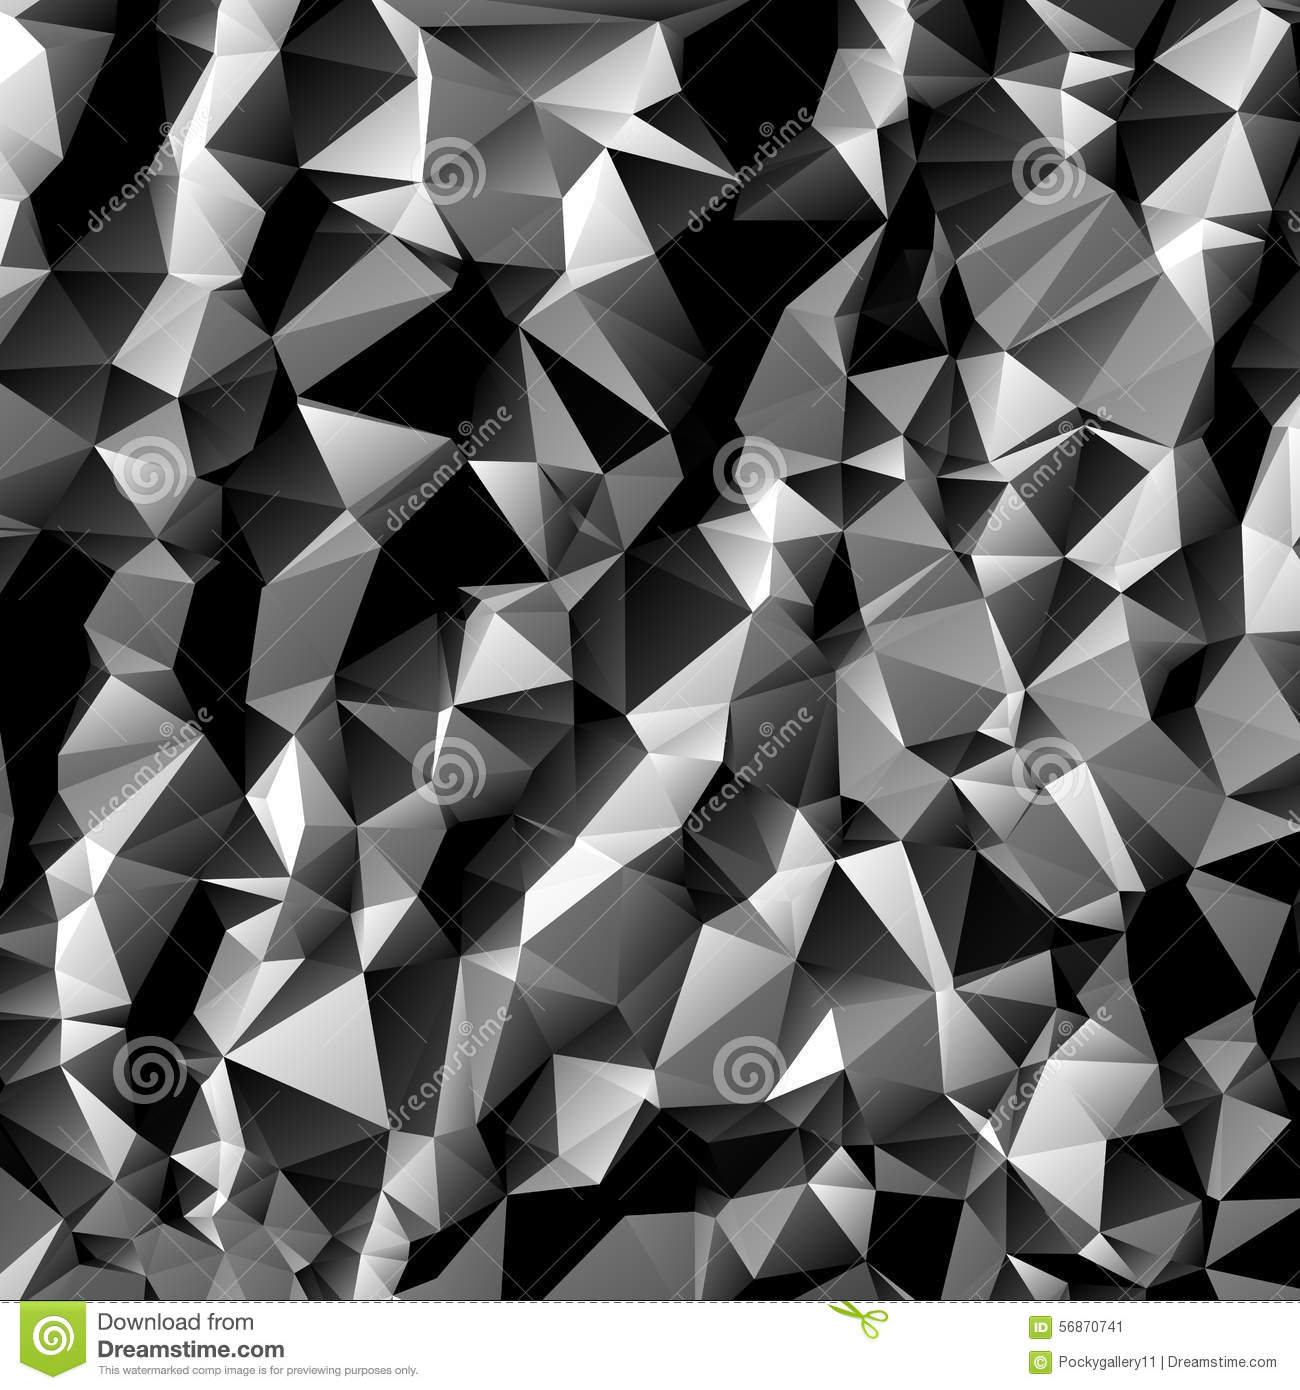 polygon texture wallpapers: Black And White Polygon Abstract Background Stock Vector